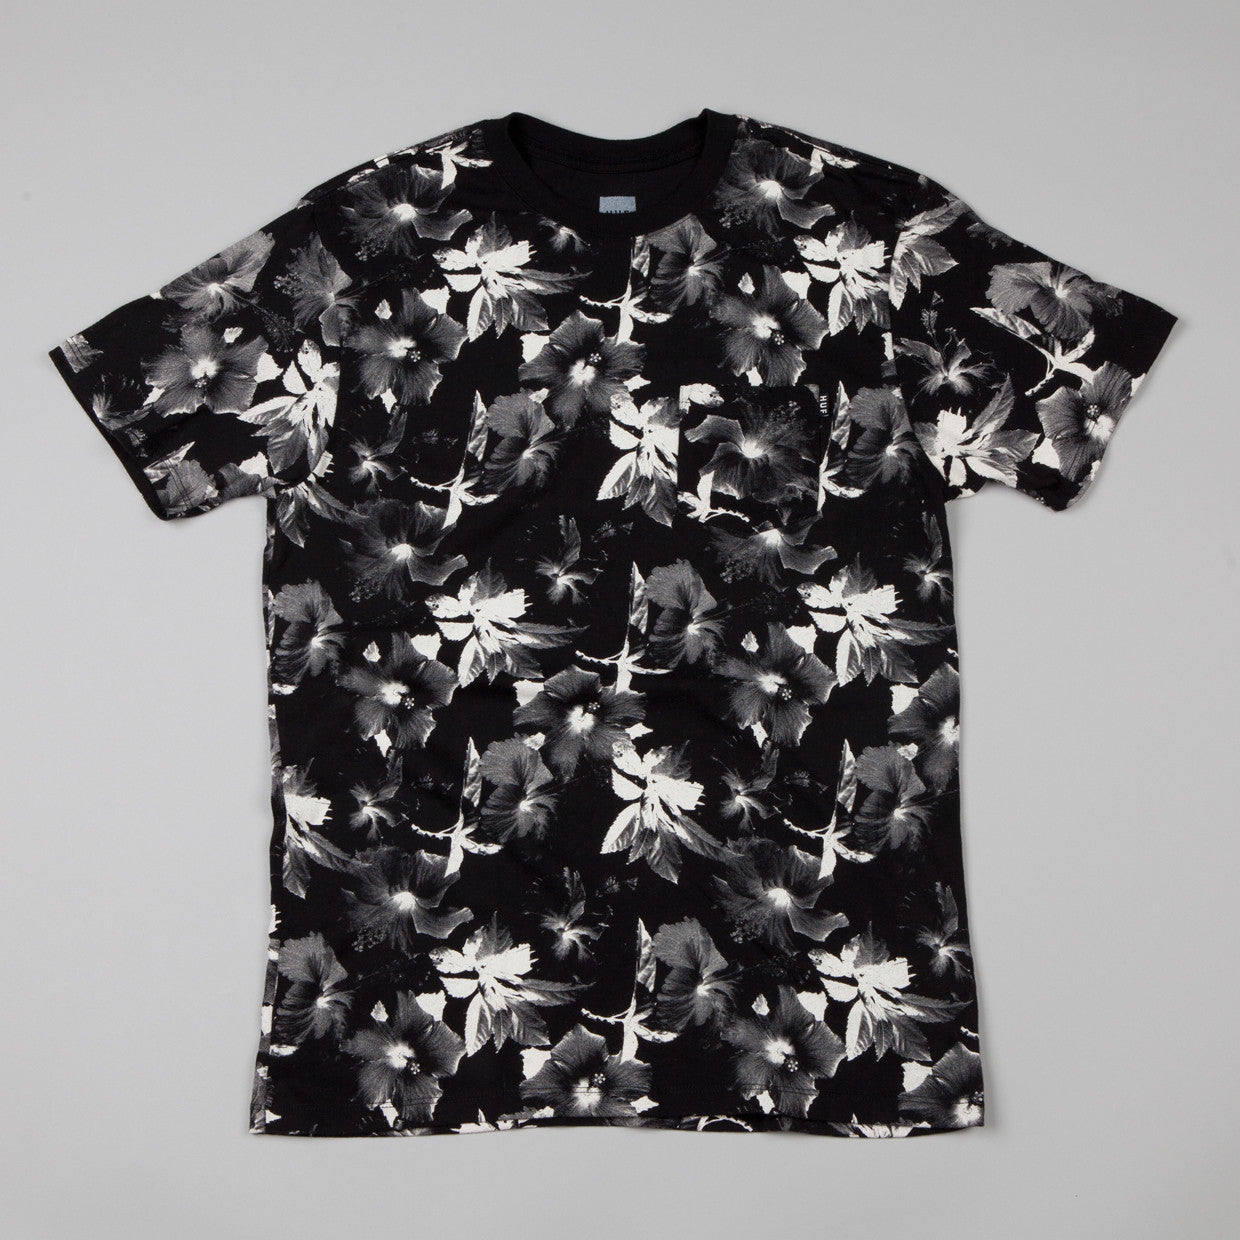 HUF Floral Pocket T-shirt Black / White